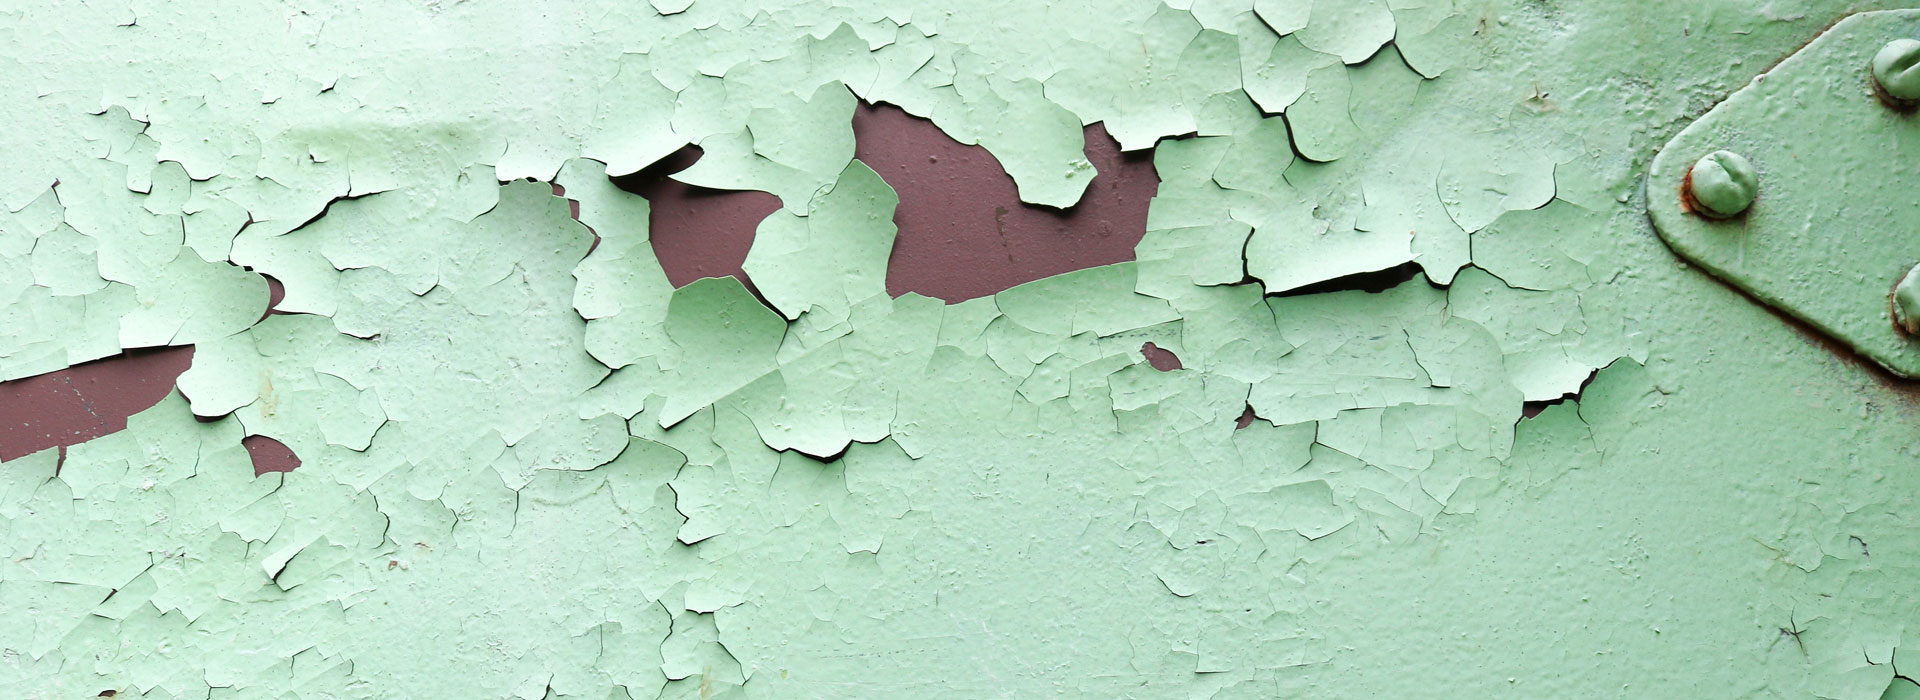 FREE: 4 CE for Broker Awareness on Lead-Based Paints